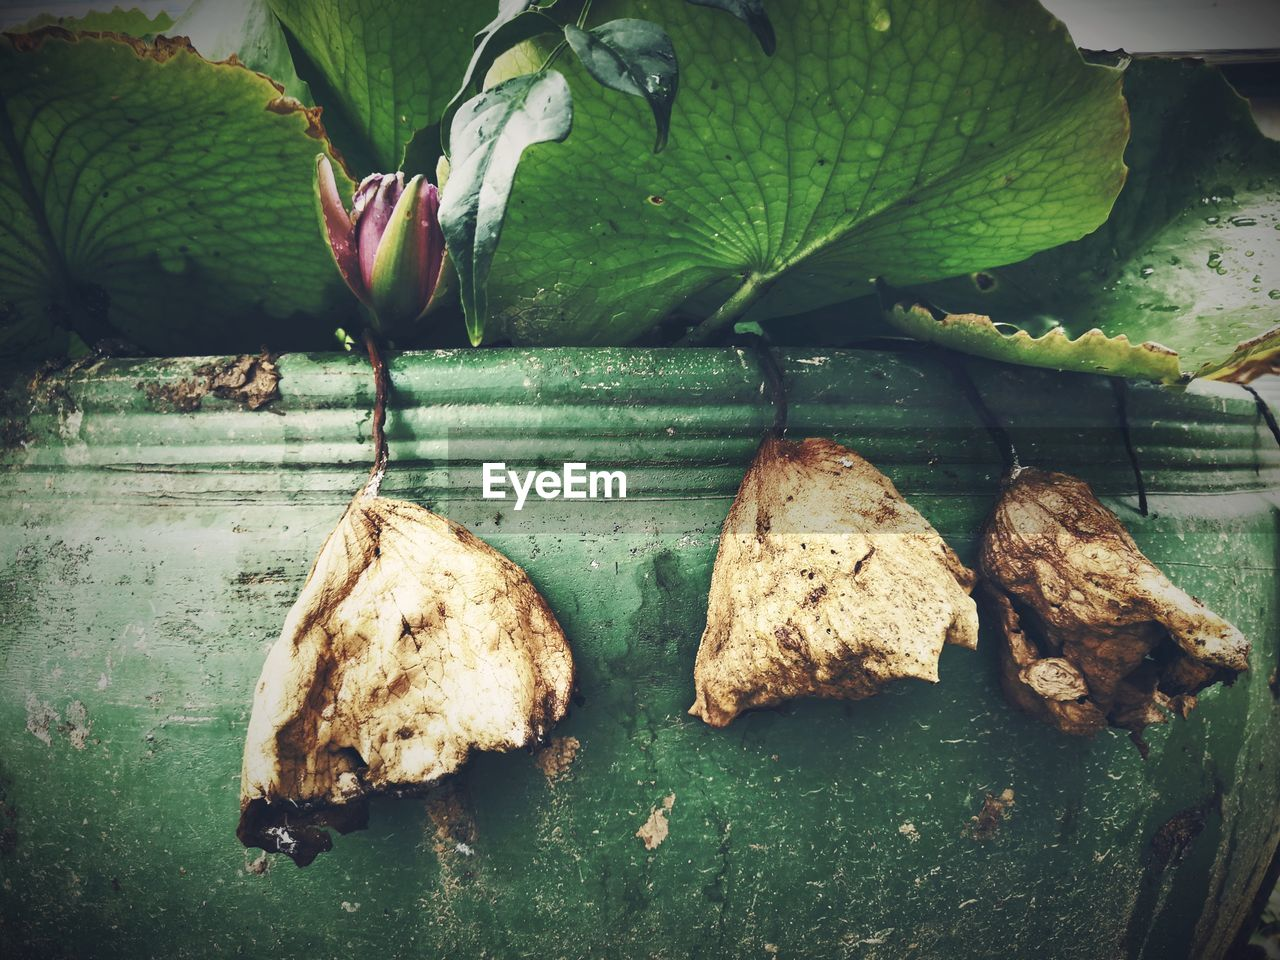 leaf, plant part, food and drink, food, close-up, no people, healthy eating, freshness, green color, nature, wellbeing, day, plant, outdoors, fruit, high angle view, beauty in nature, leaves, growth